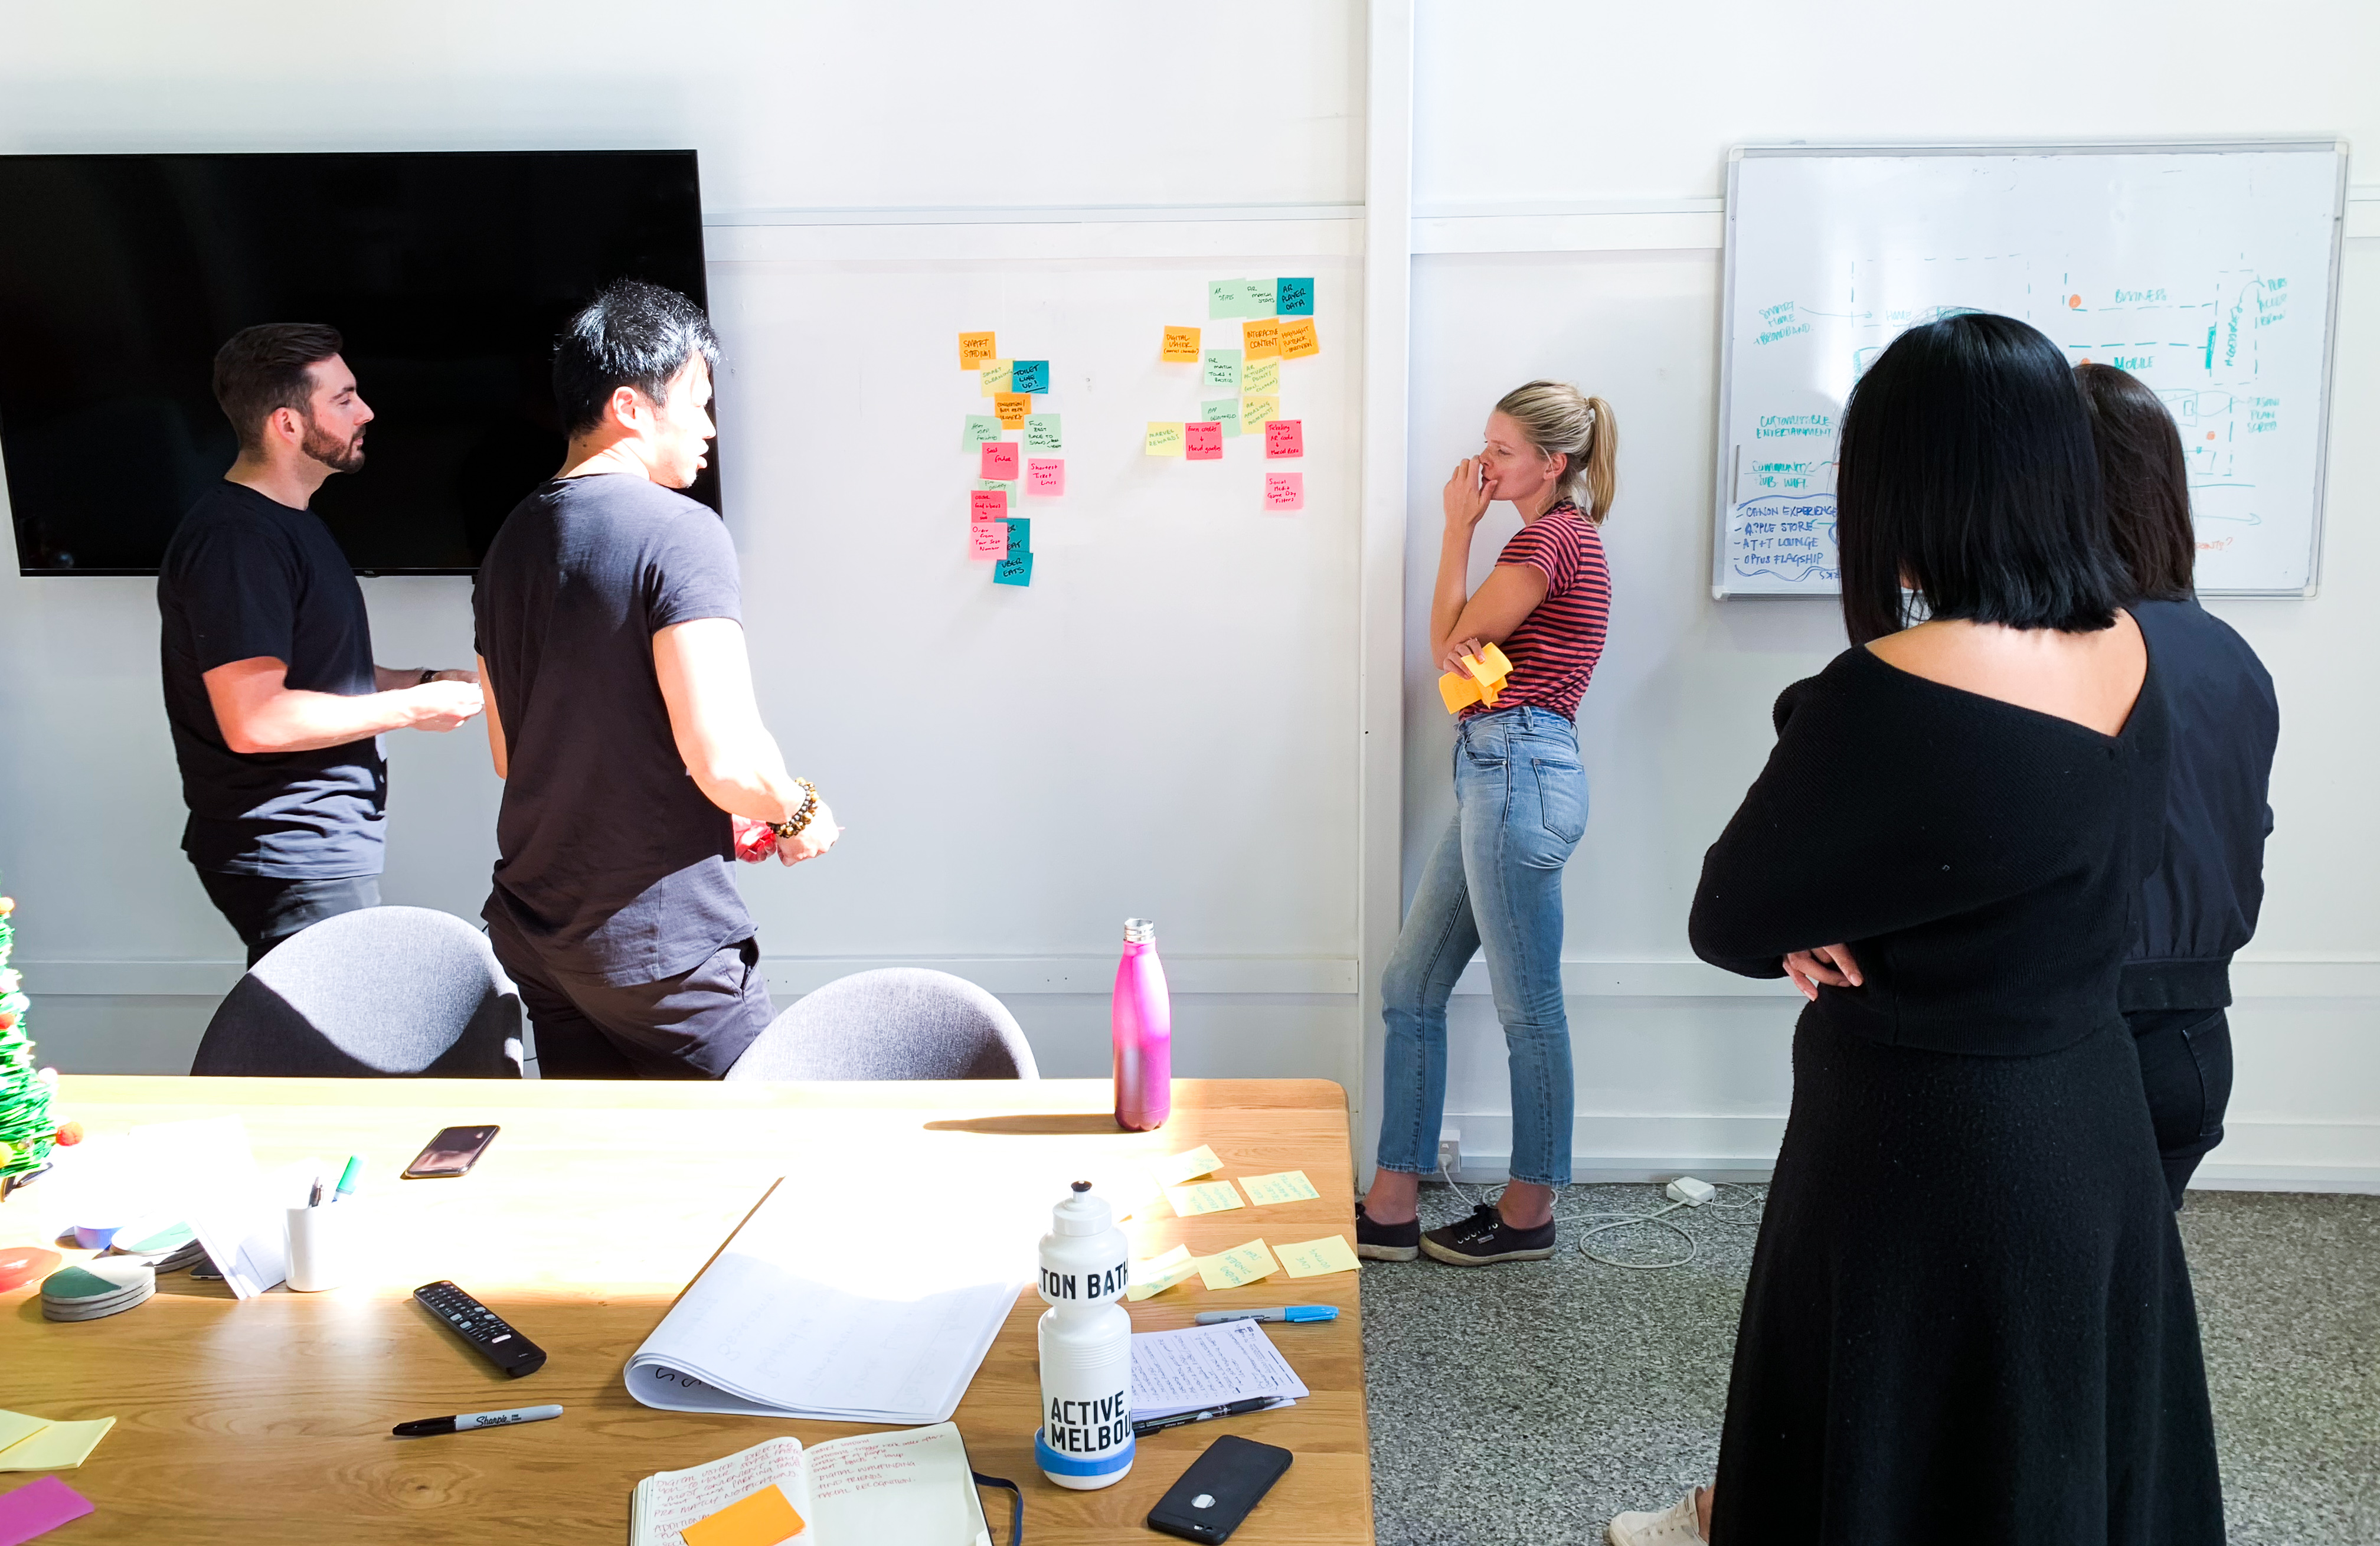 What I've learned working in a design-focussed team